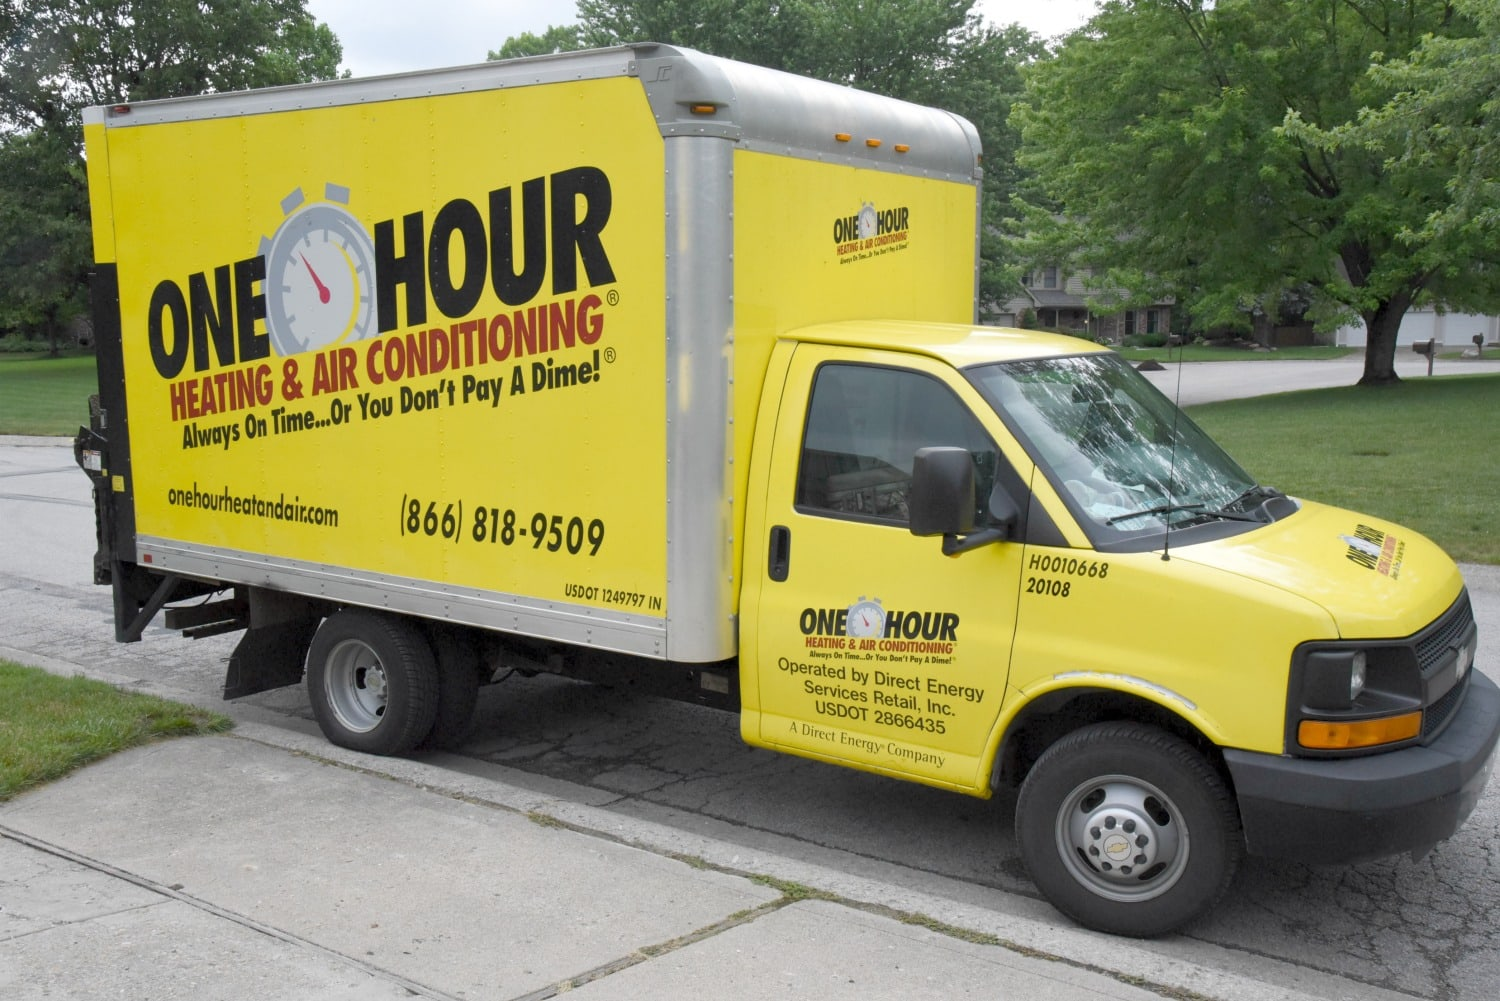 One-Hour heating and air